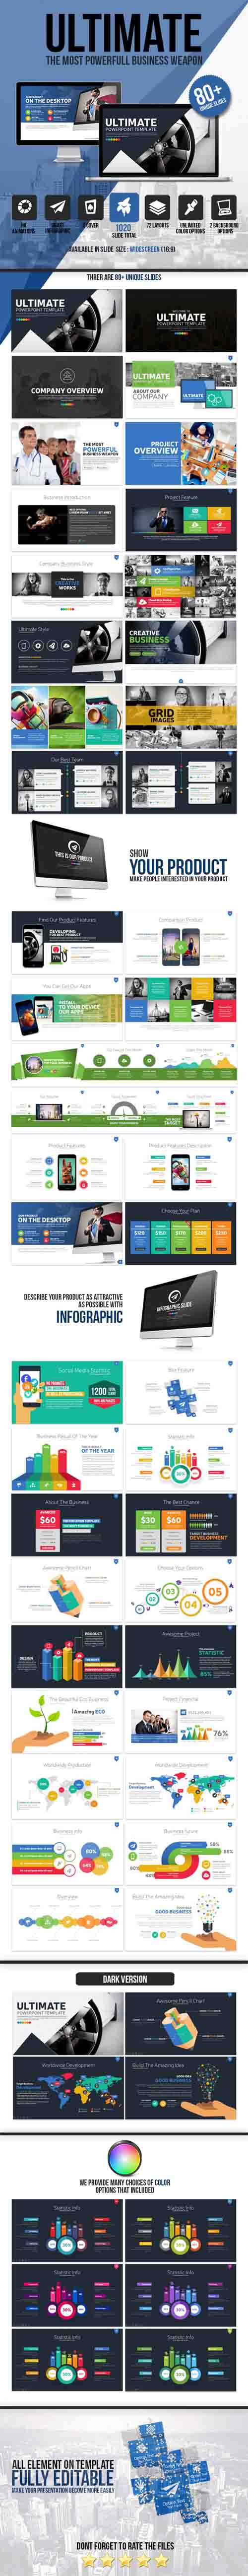 Ultimate Presentation Template 11821227